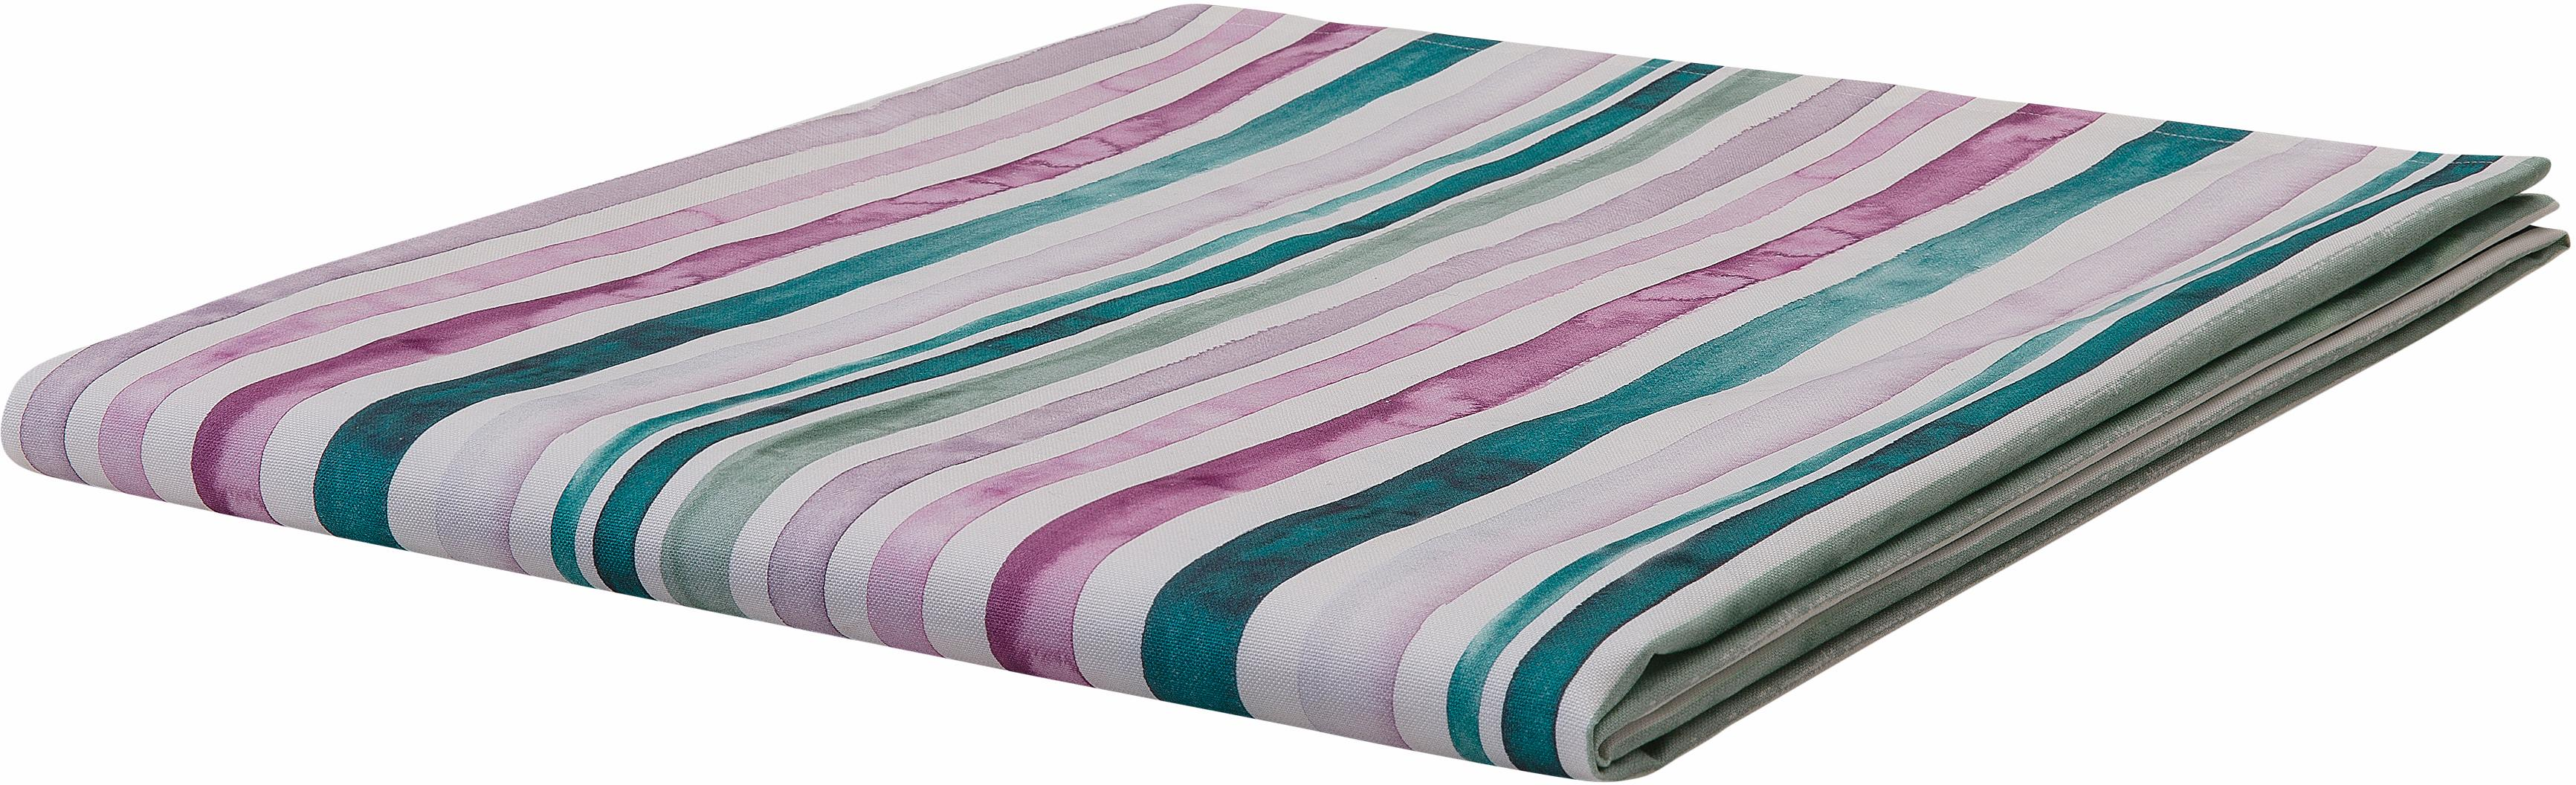 Tischdecke Garden Stripes Guido Maria Kretschmer Home&Living (1-tlg)